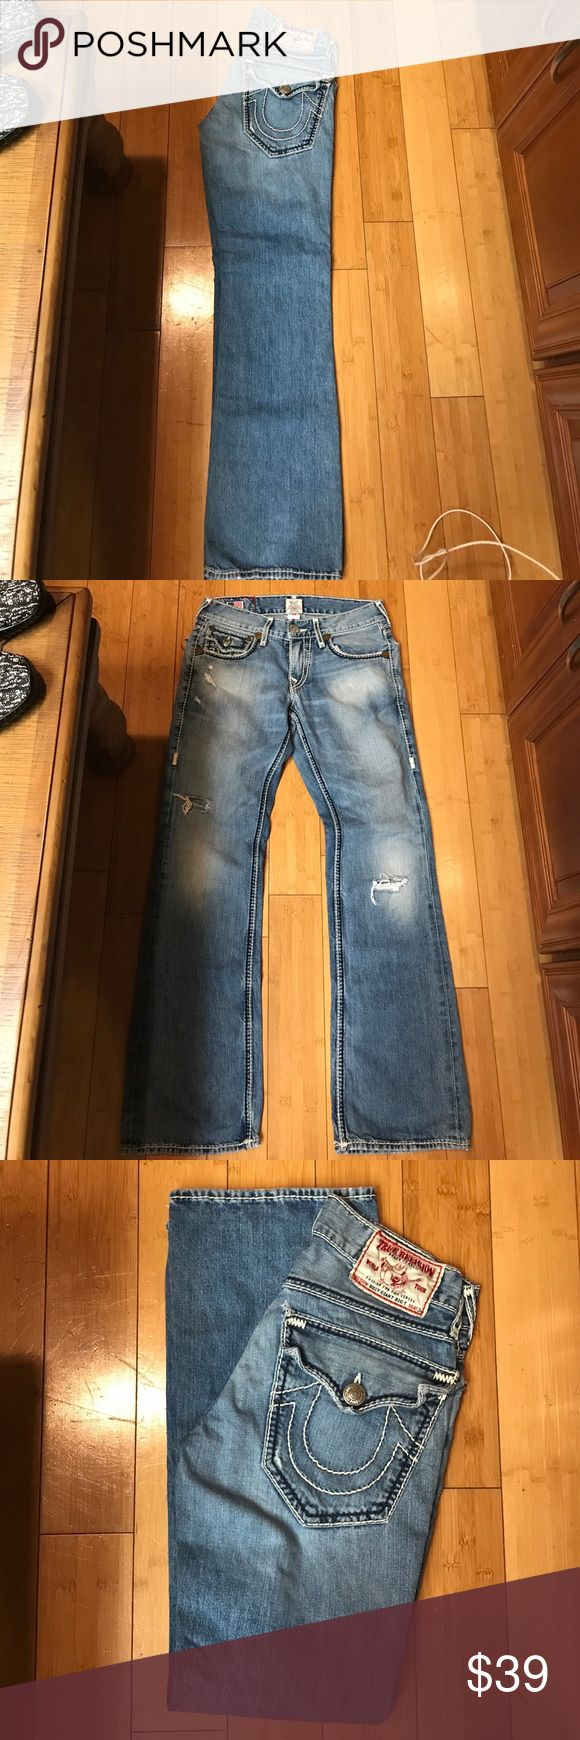 Men's True Religion Billy Giant Big T size 28 Men's True Religion Giant Big T seat 34 jeans are a size 28 these are in great condition hardly worn. Please make me an offer, follow my closet, share and like my closet thank you so much! These can be cut nicely into shorty shorts for girls and or cut into men's shorts like board shorts or be really creative and make into a denim Handbag. Thanks!! True Religion Jeans Bootcut